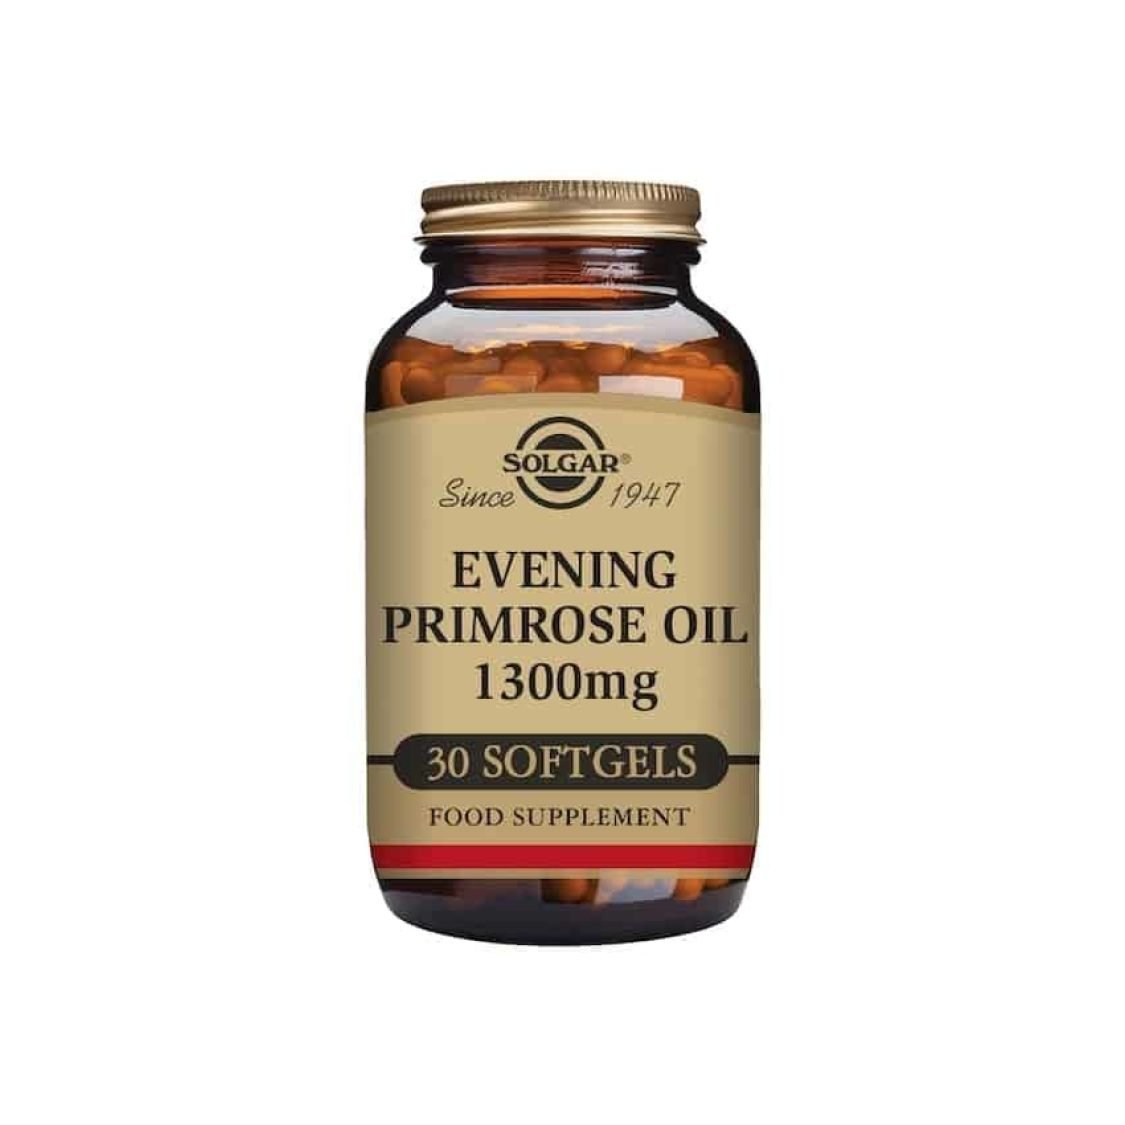 Solgar - Essential Fatty Acids - Evening Primrose Oil 1300mg Softgels - Size: 30